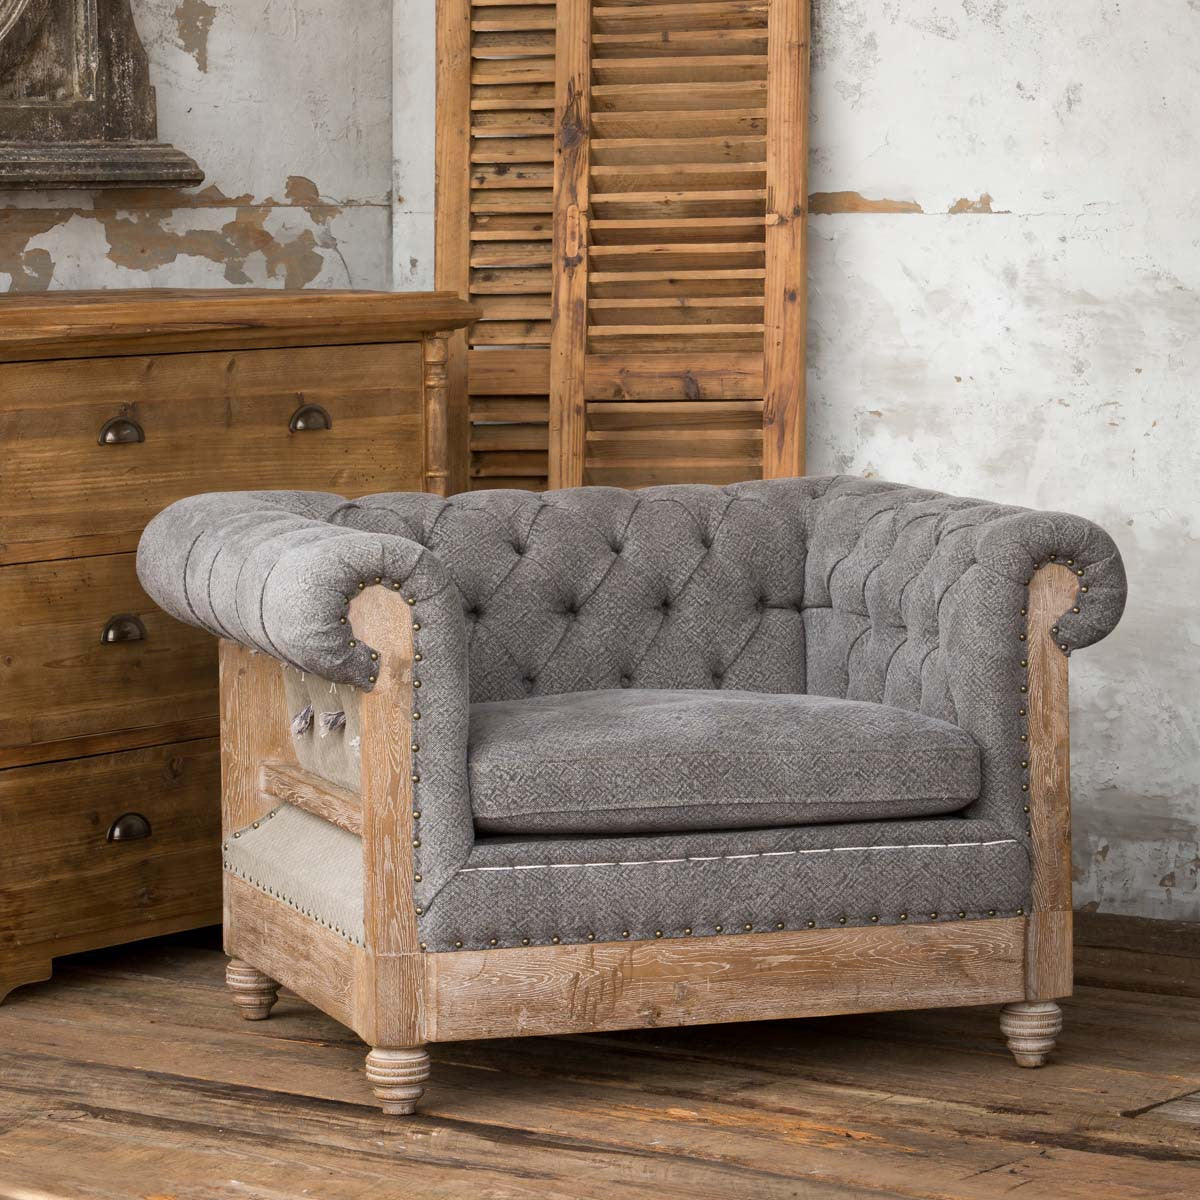 Park Hill Capital Hotel Chesterfield Chair, Parker Tavern deconstructed exposed frame blue tufted chair